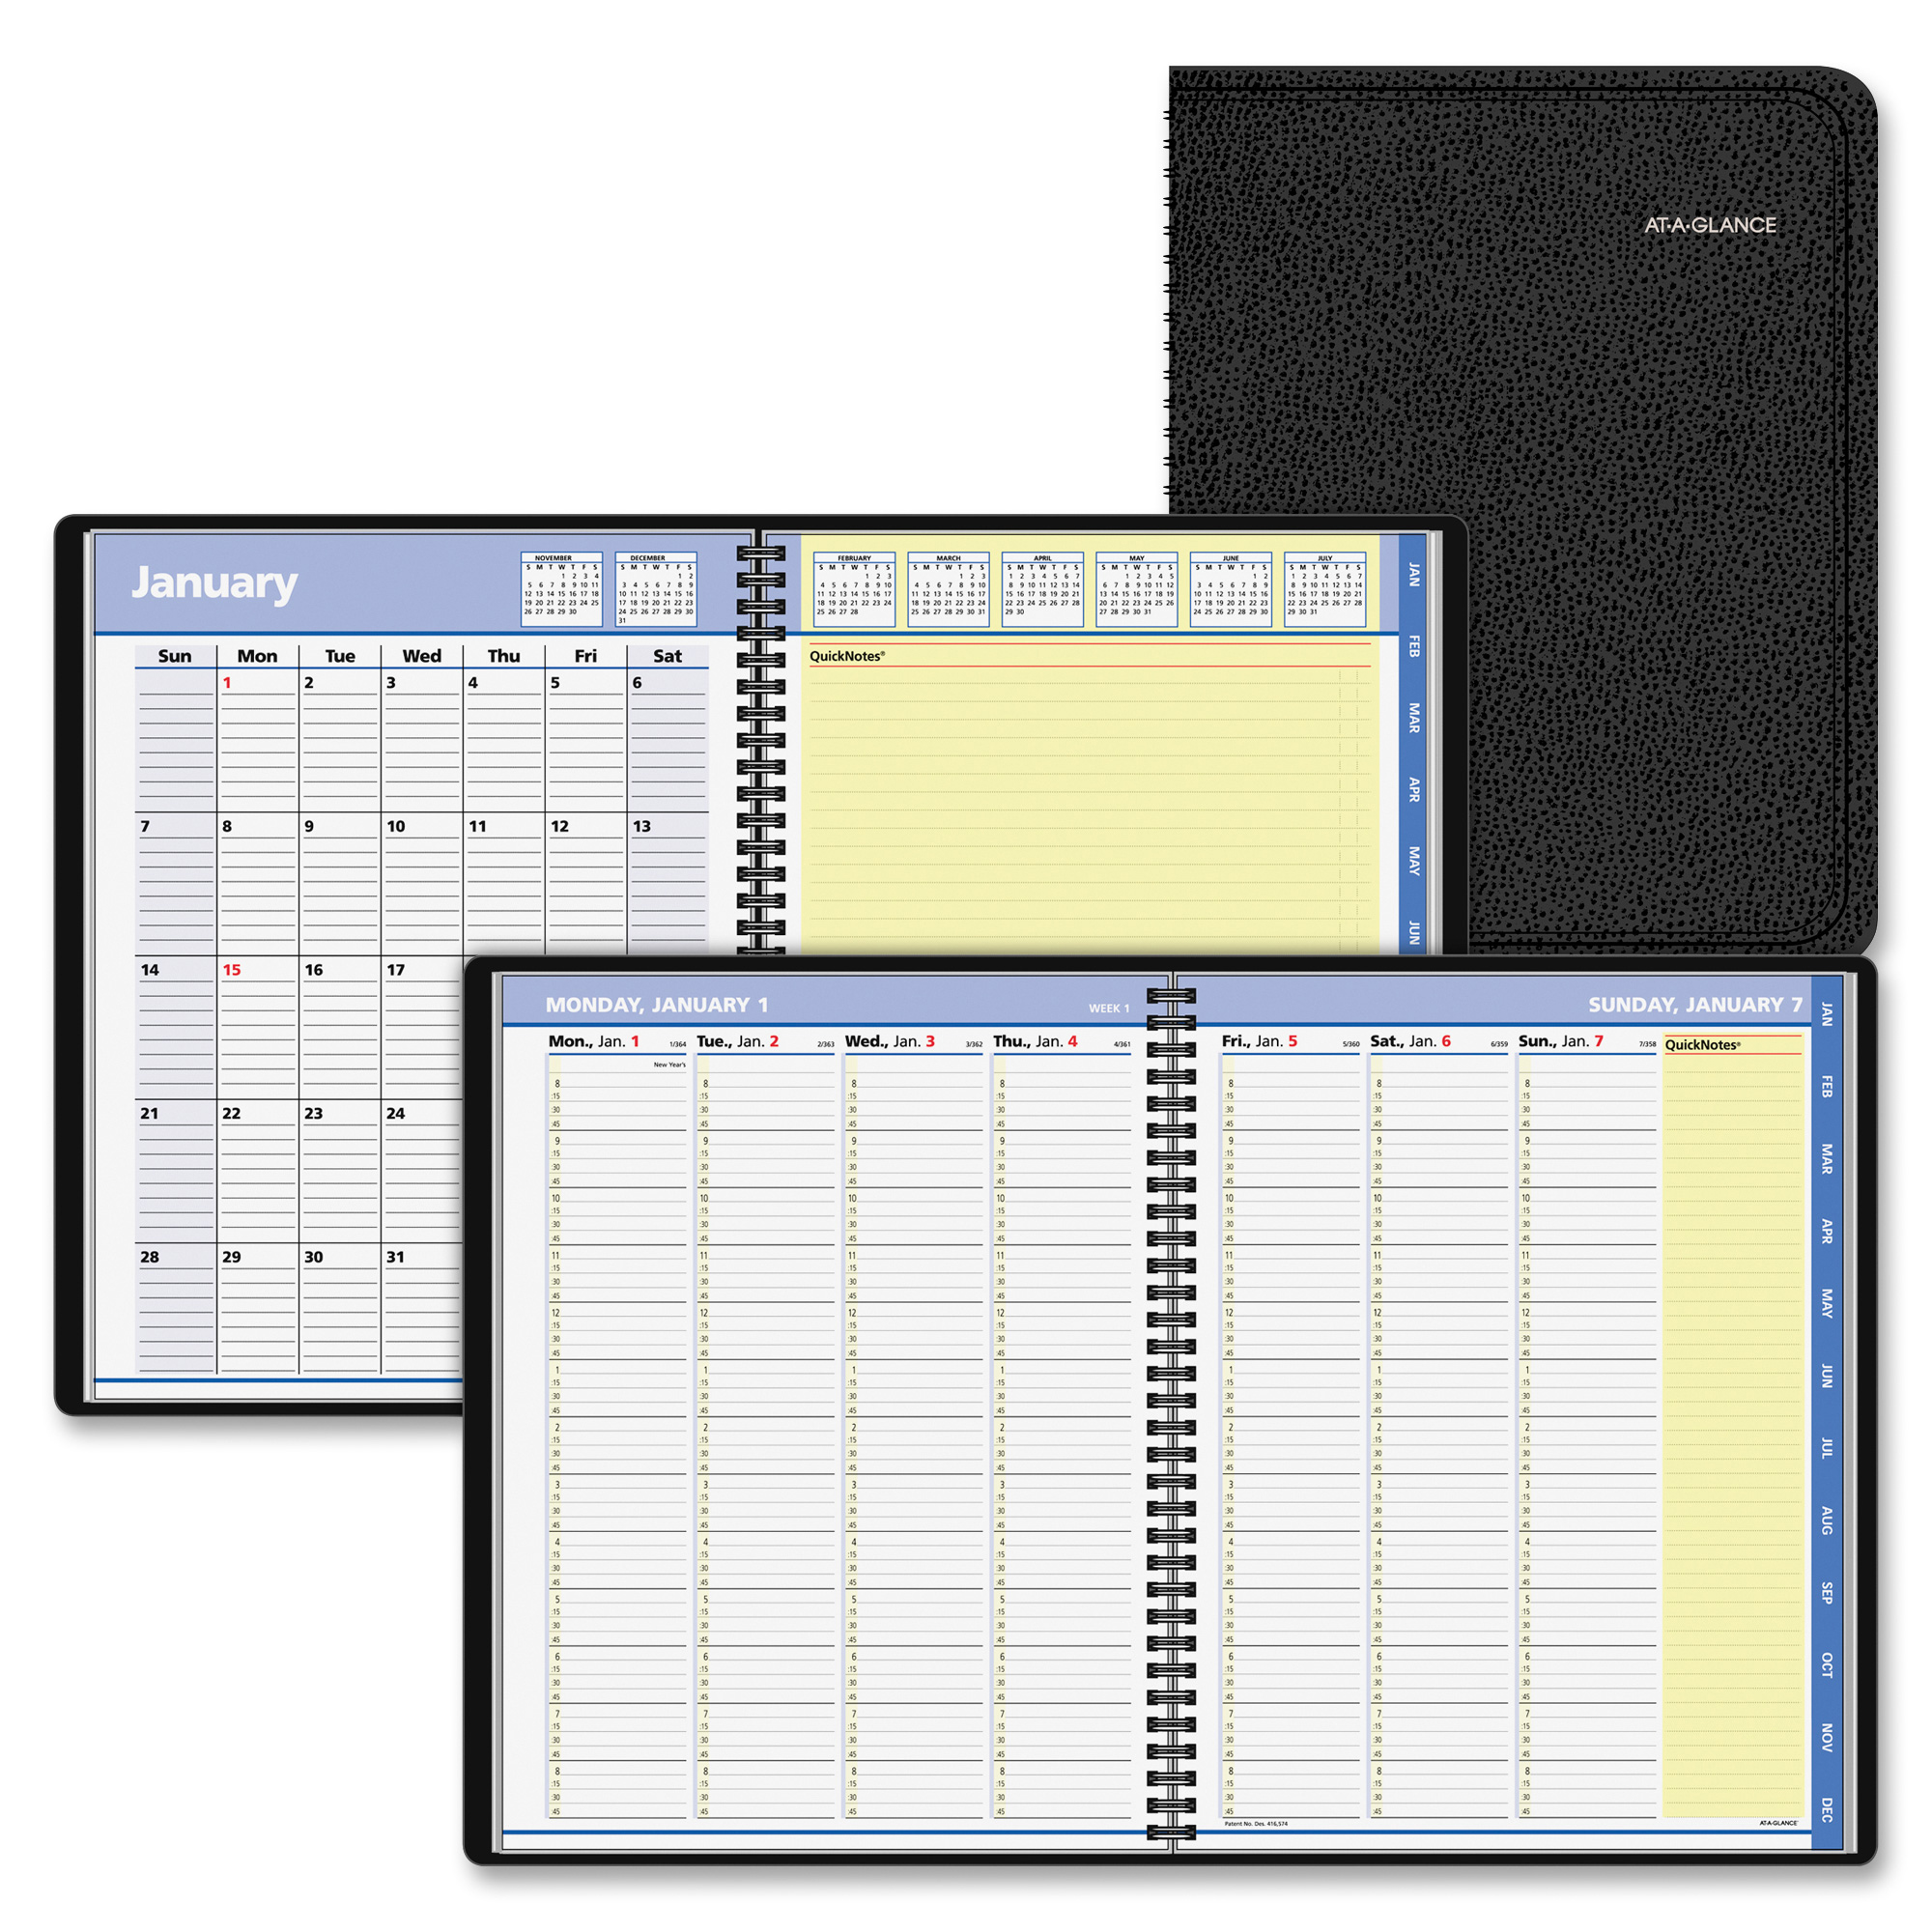 AT-A-GLANCE QuickNotes Weekly/Monthly Appointment Book, 8 1/4 x 10 7/8, Black, 2017